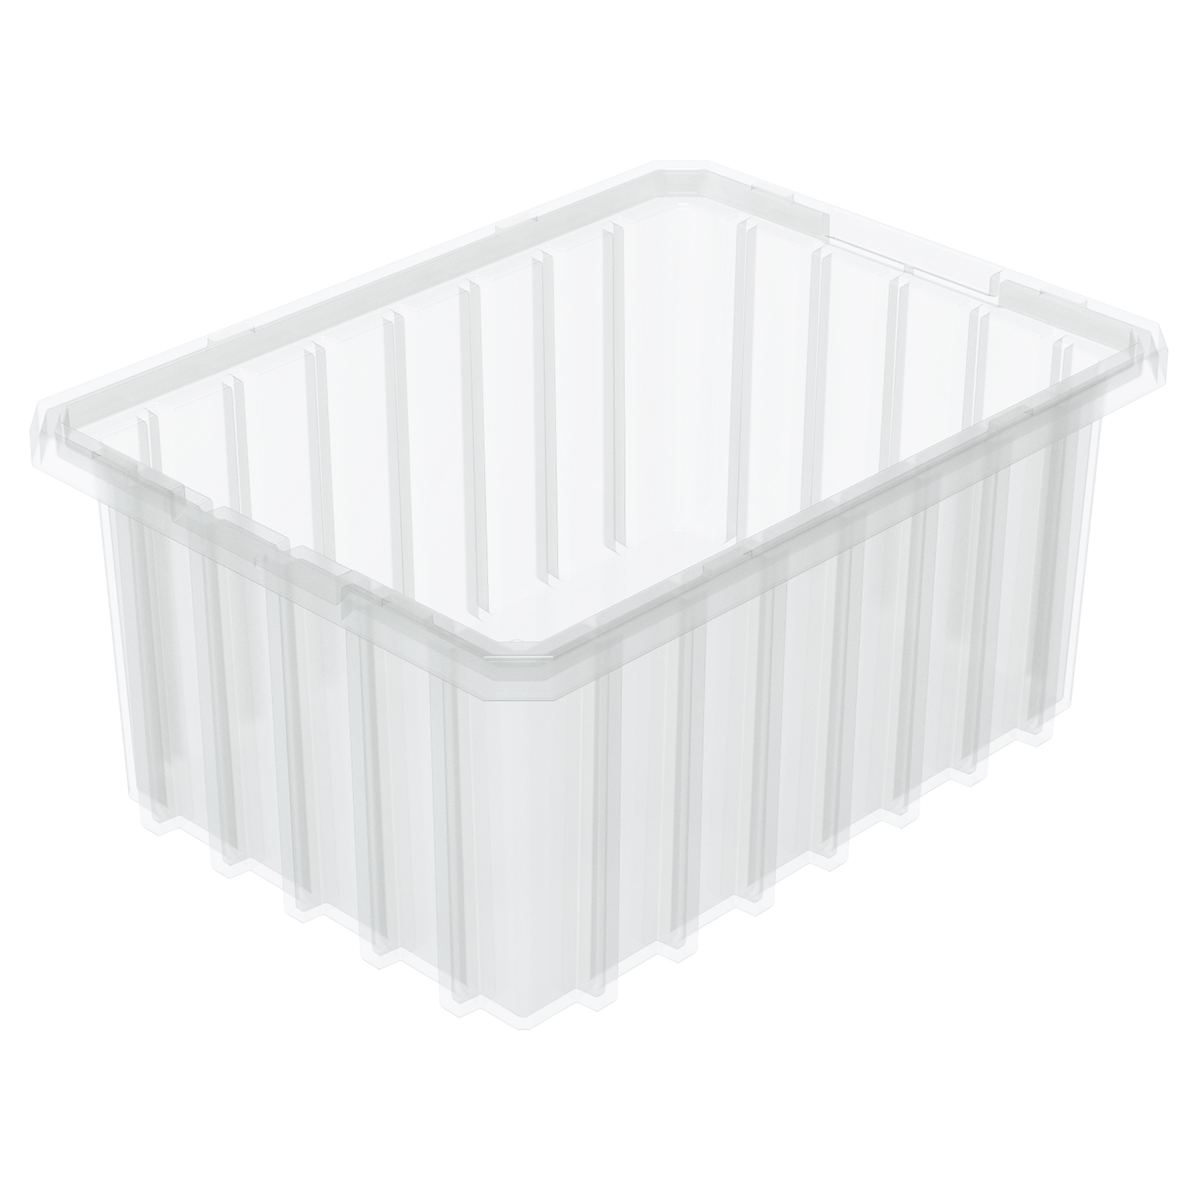 Akro-Grid Dividable Box 10-7/8 x 8-1/4 x 5, Clear (33105SCLAR).  This item sold in carton quantities of 20.